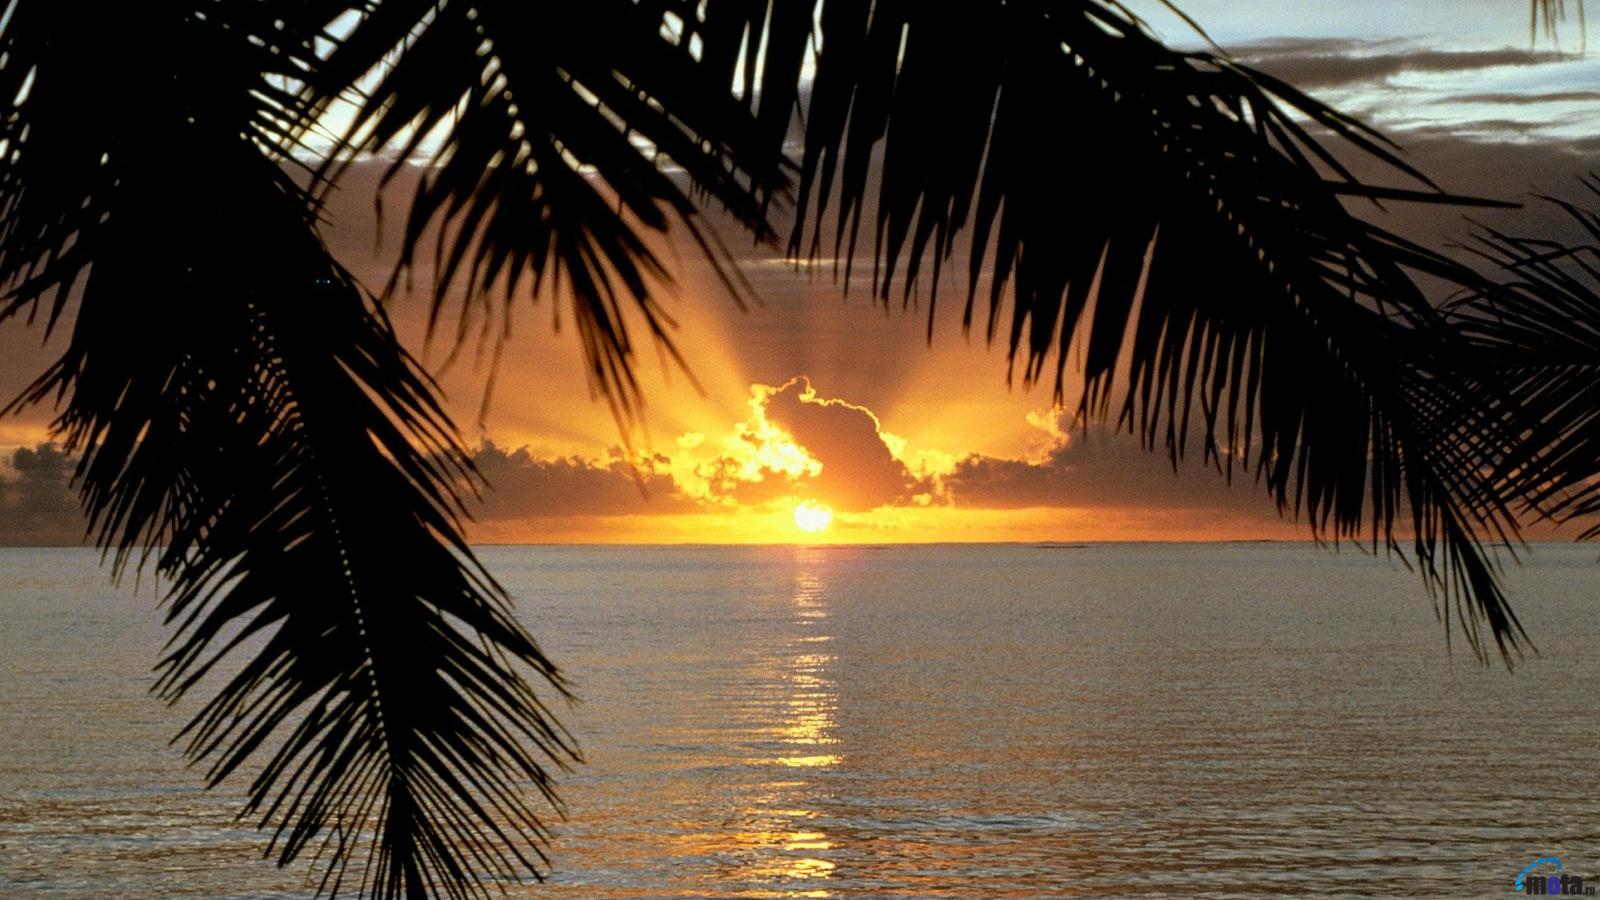 Download Wallpaper Tropical sunset and palm leaves 1600 x 900 1600x900